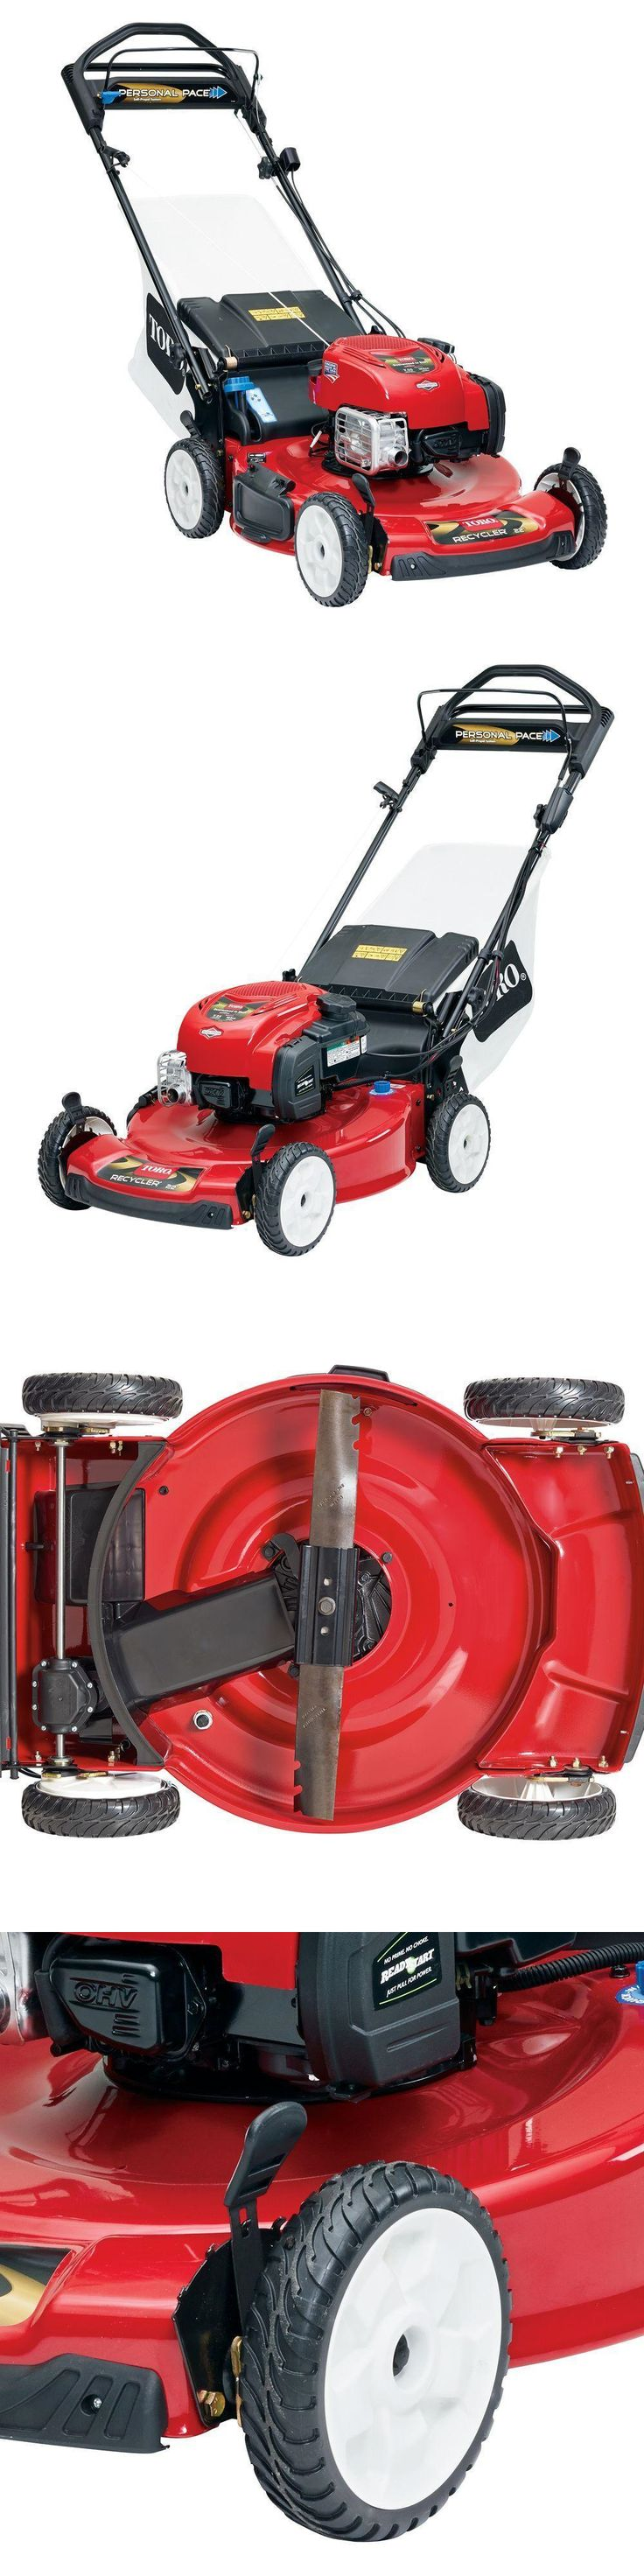 Toro timecutter z and wheel horse residential duty riding mowers are - Walk Behind Mowers 71272 Toro Recycler 22 Personal Pace Variable Speed Electric Mower Model